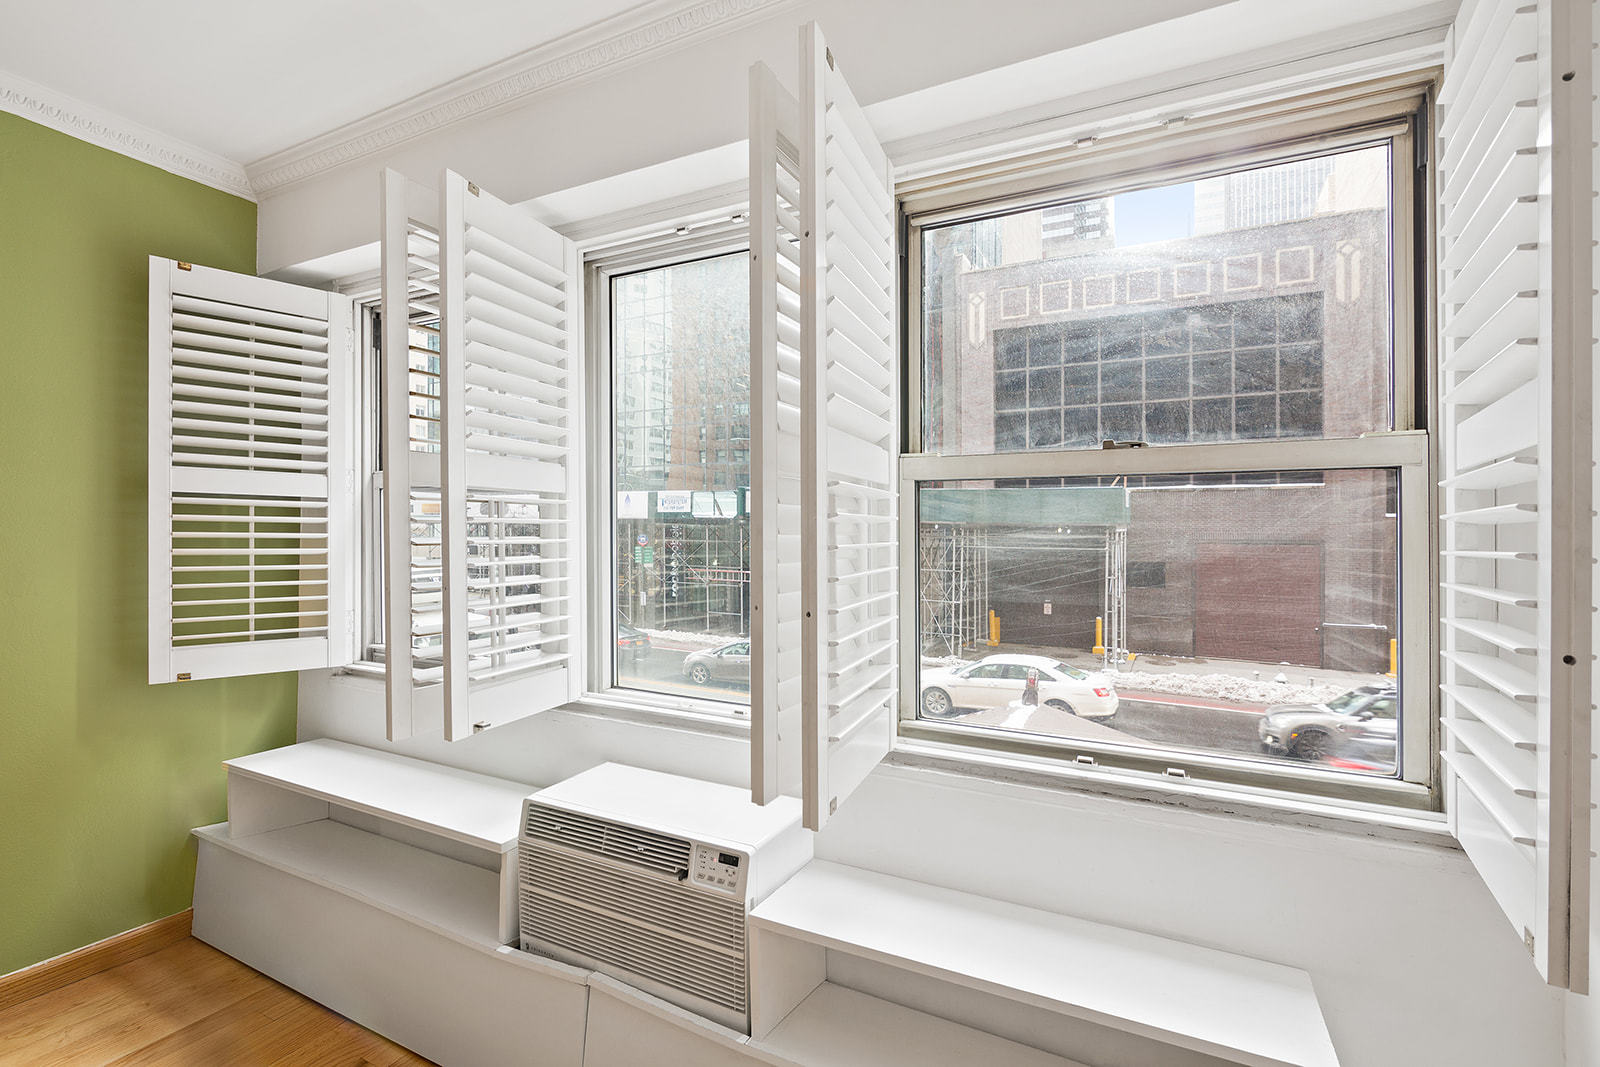 Apartment for sale at 153 East 57th Street, Apt 2-F